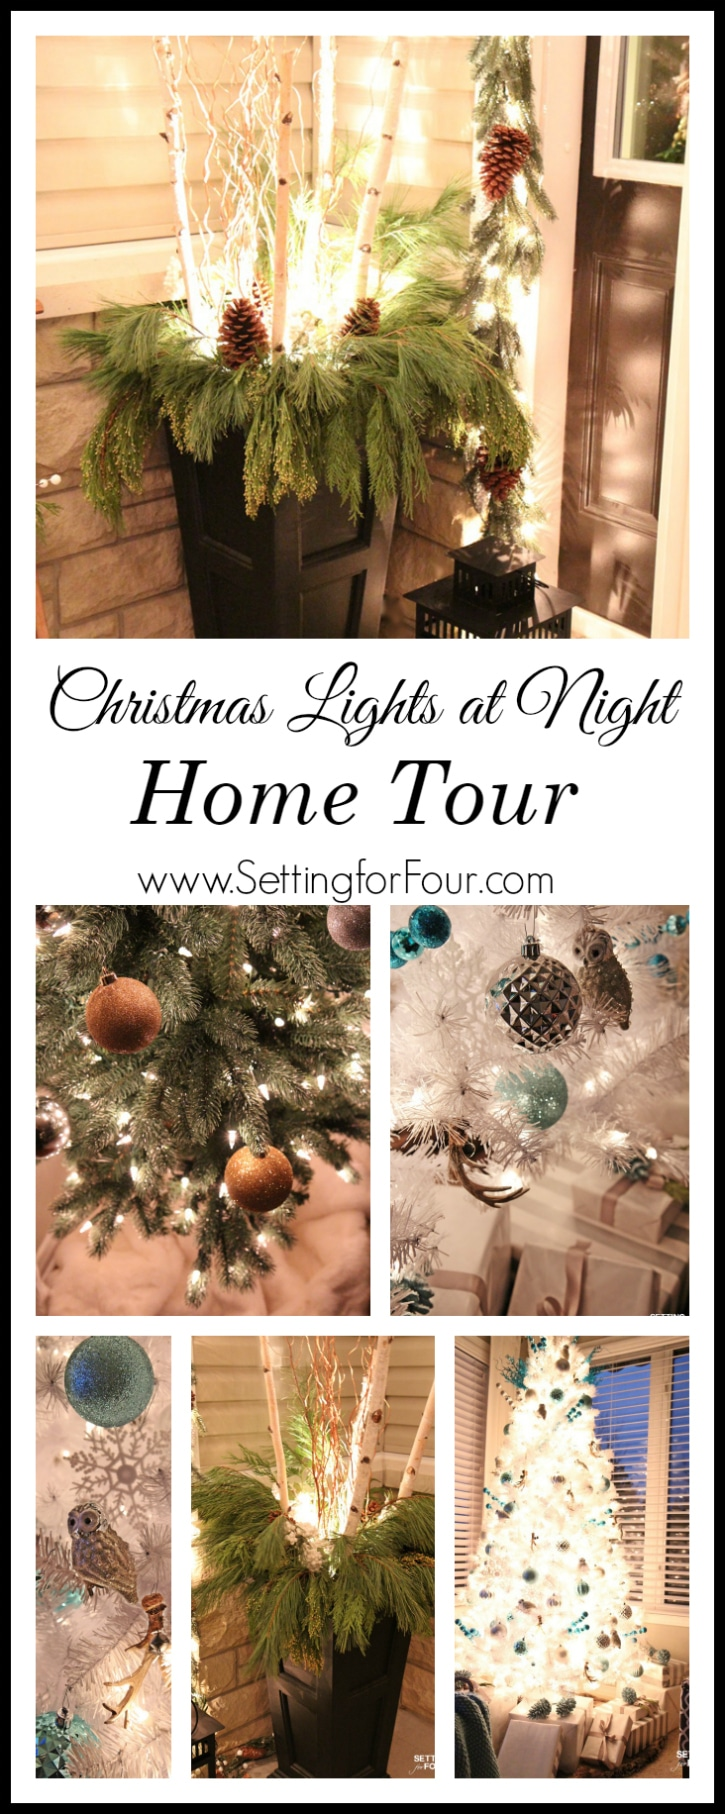 Gazing at Christmas lights at night is so magical and peaceful - see the shimmer and glimmer of my Christmas Home Tour at night! www.settingforfour.com